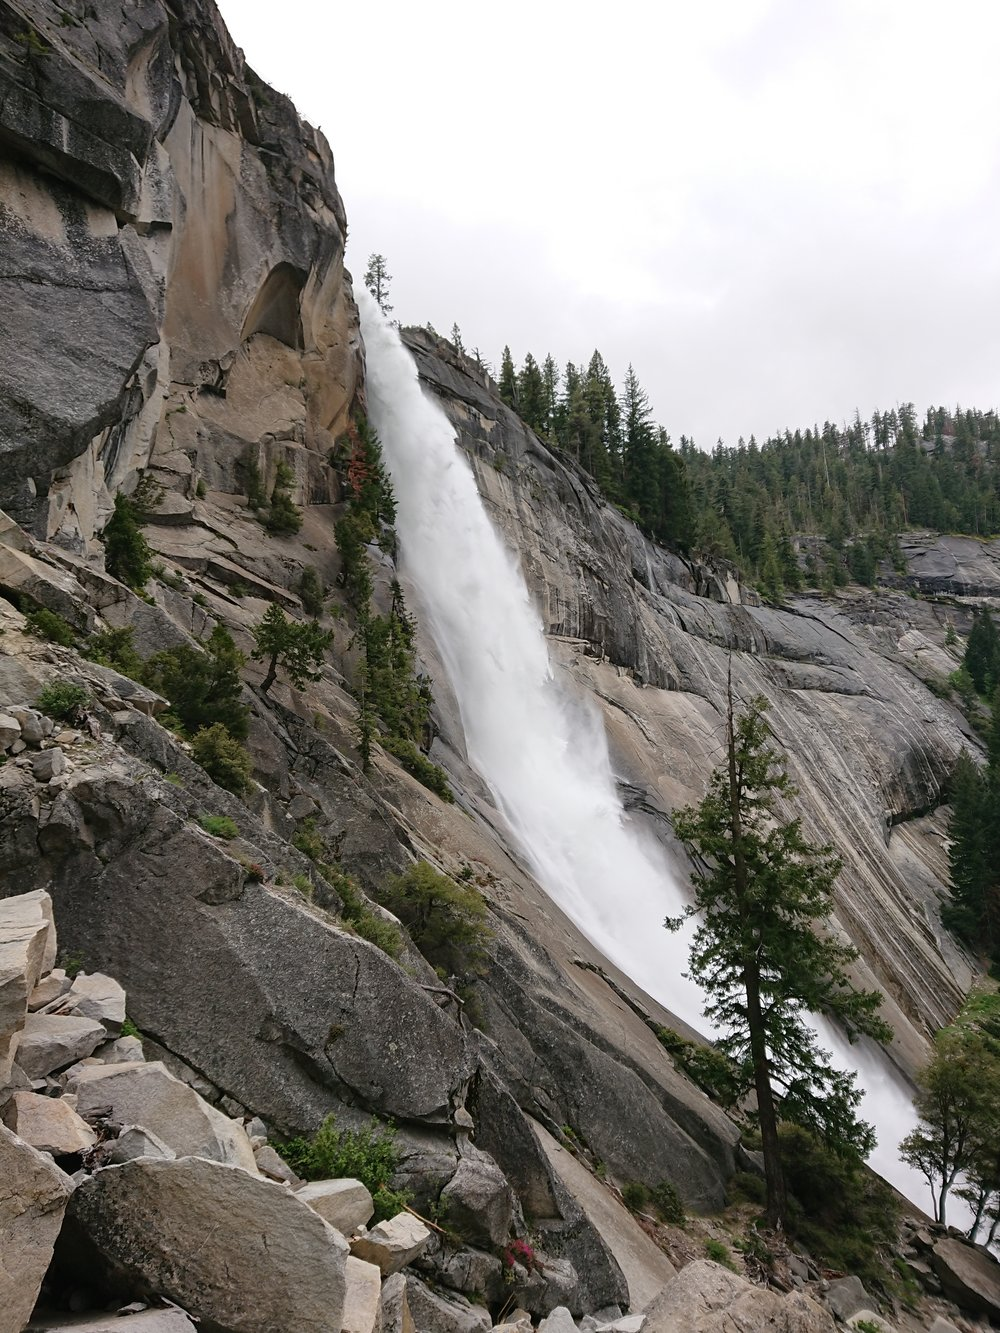 The impressive Nevada Falls from the Mist Trail